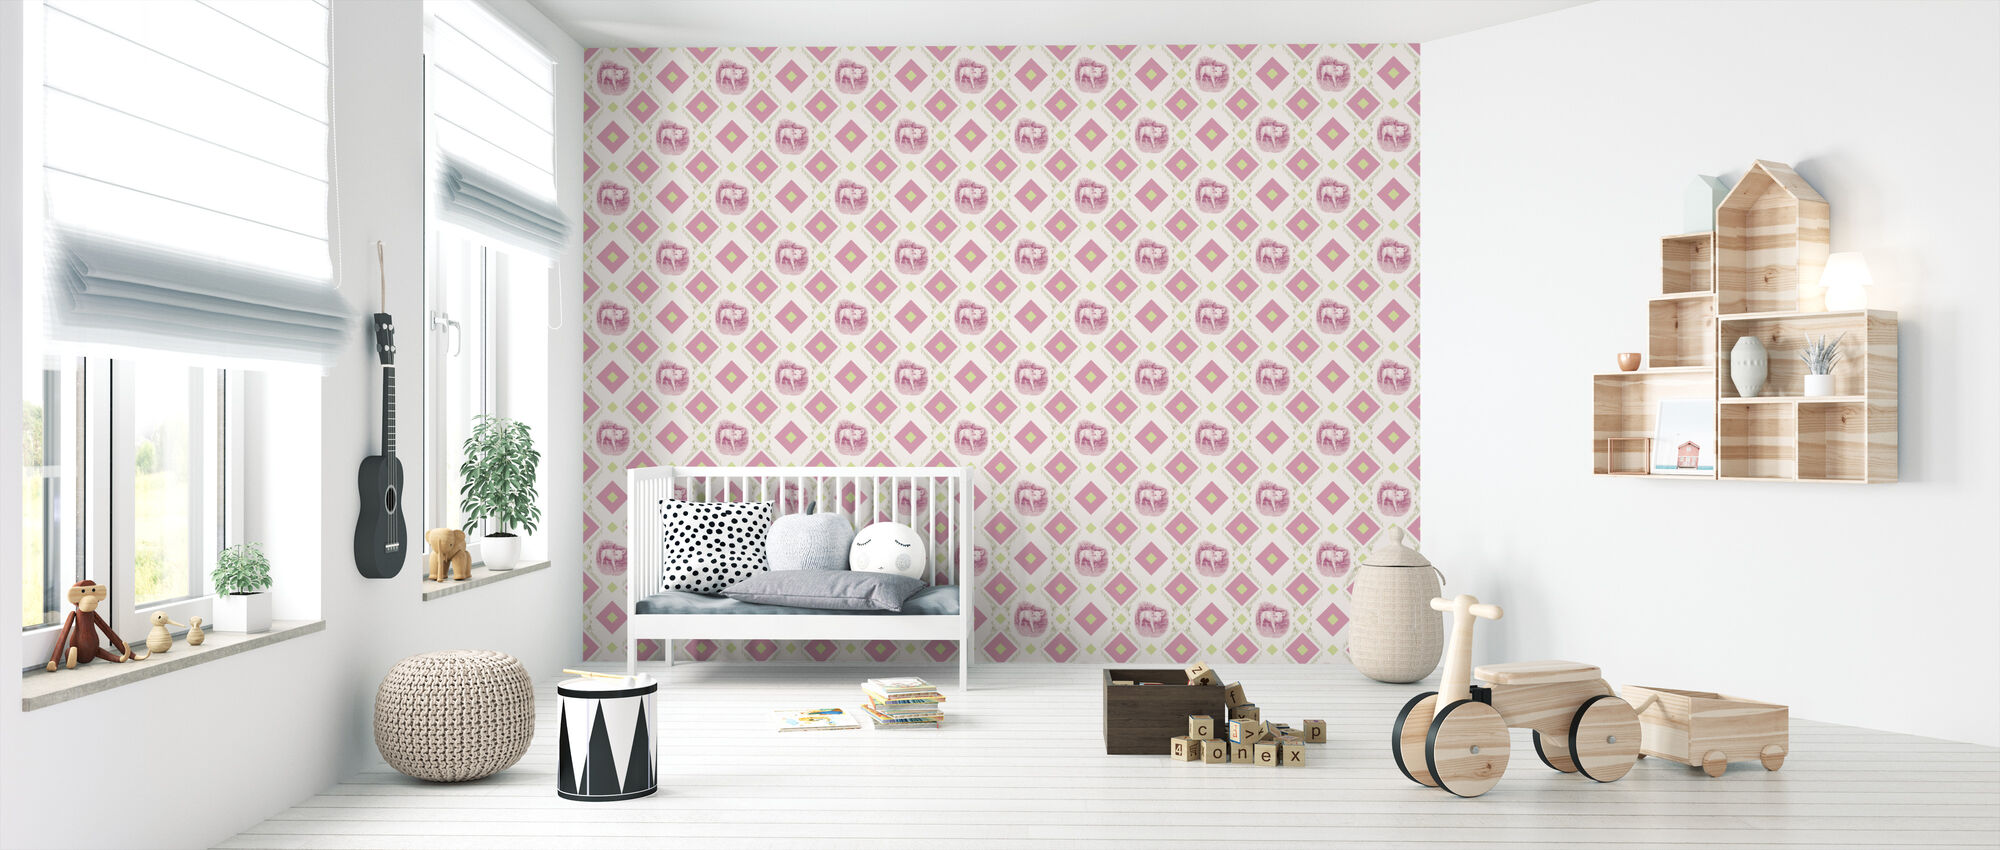 Pigglet - Gooseframe - Pink Green - Wallpaper - Nursery